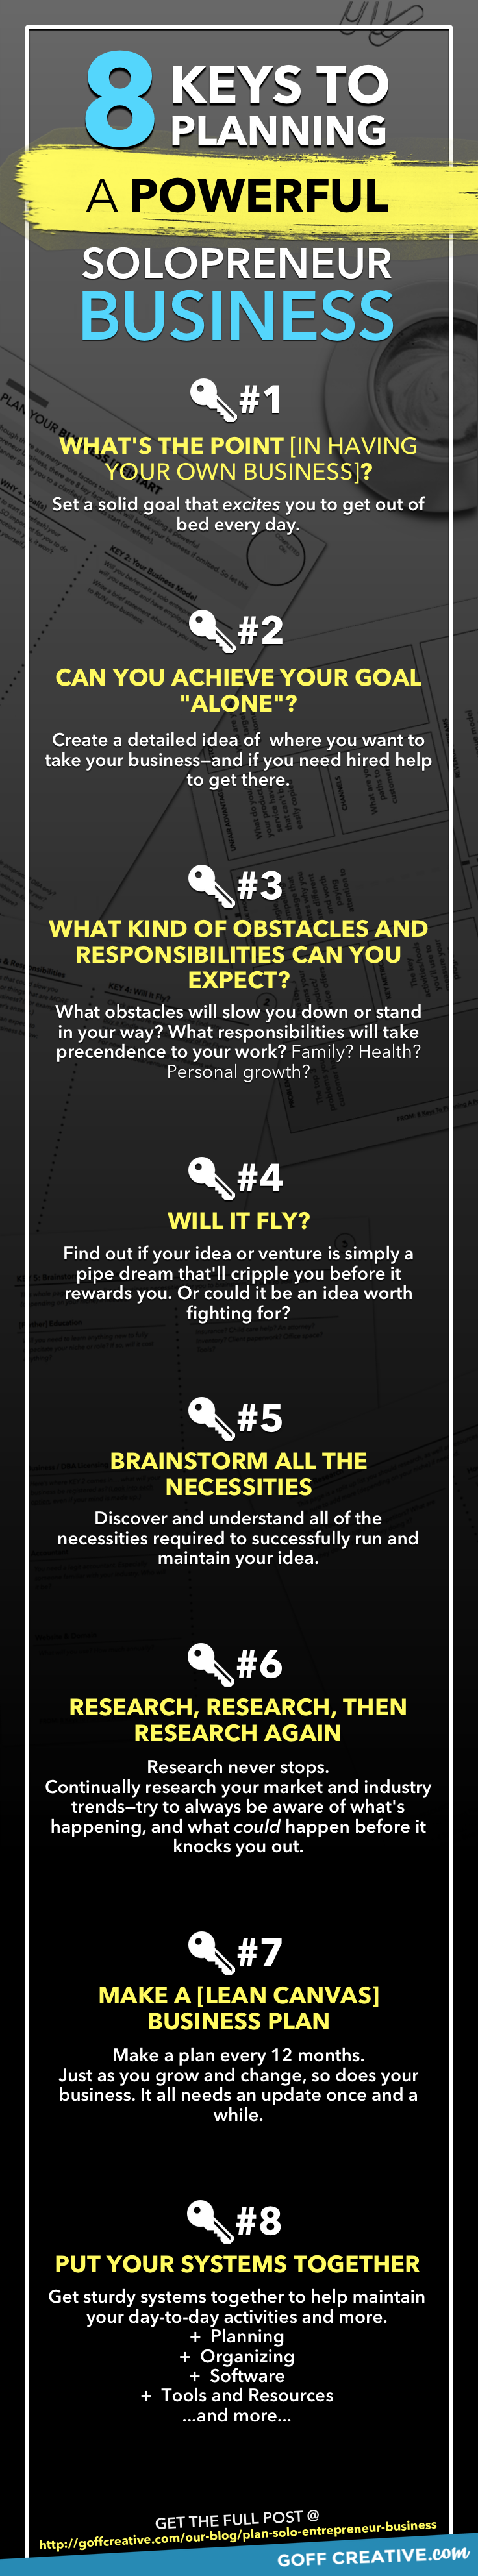 The 8 keys to planning a powerful solopreneur business, simplified. Click through to get the whole, resource-packed post or Pin this for later!